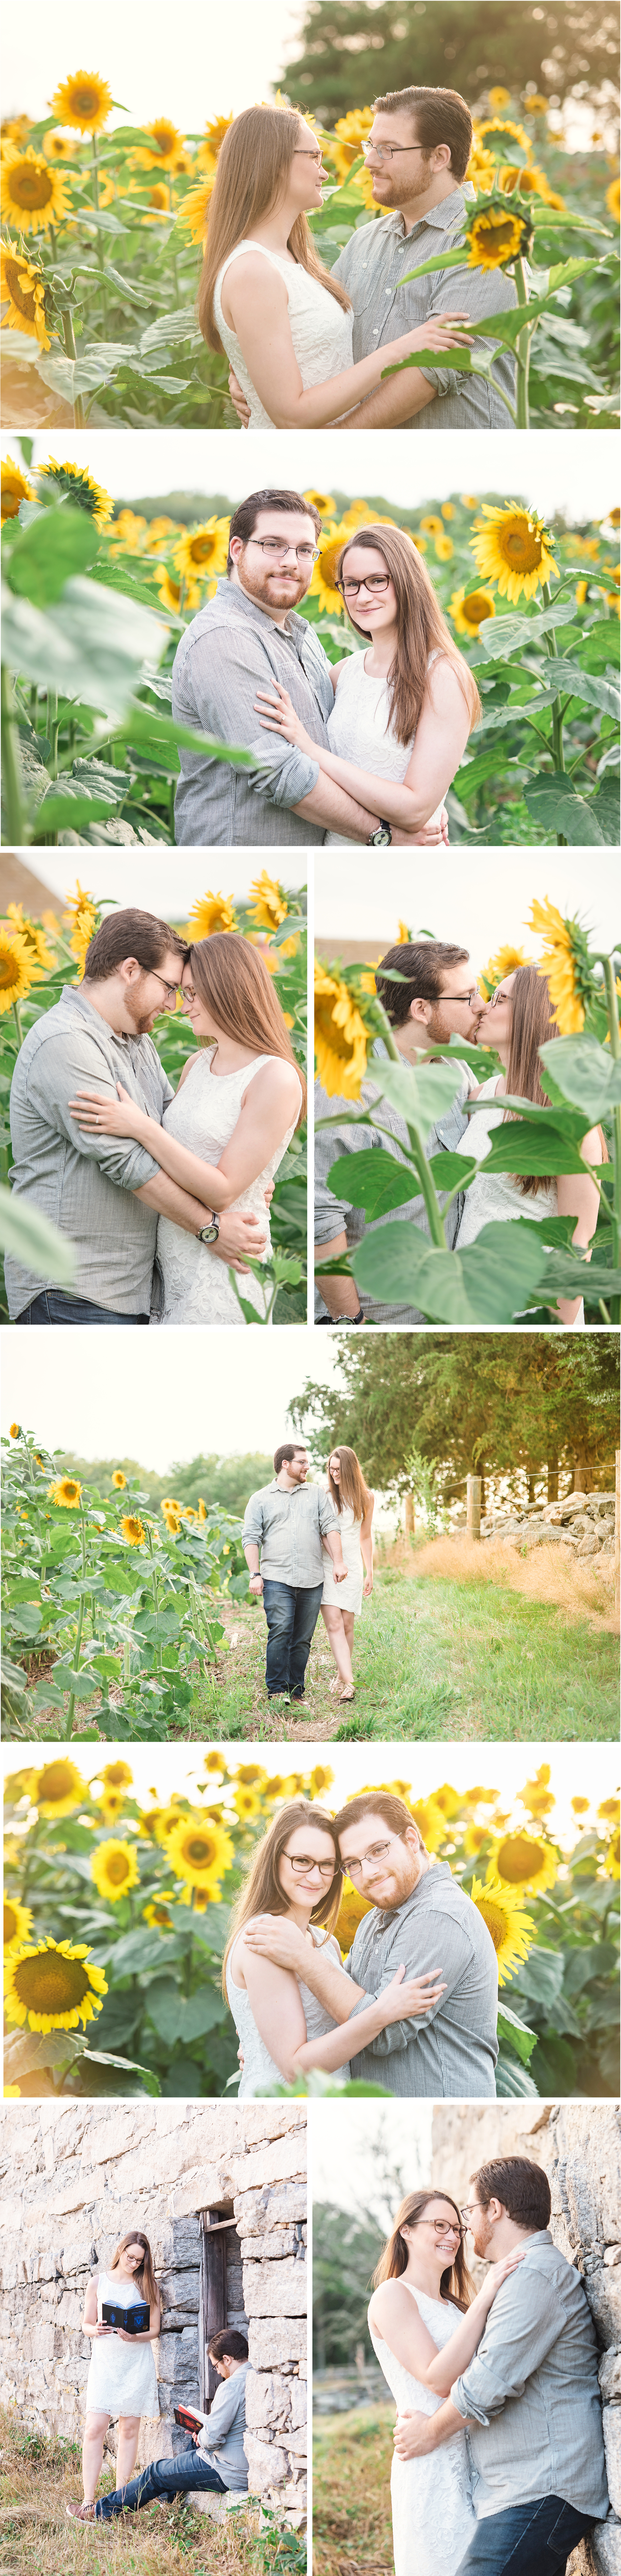 Sunflower Engagement Session